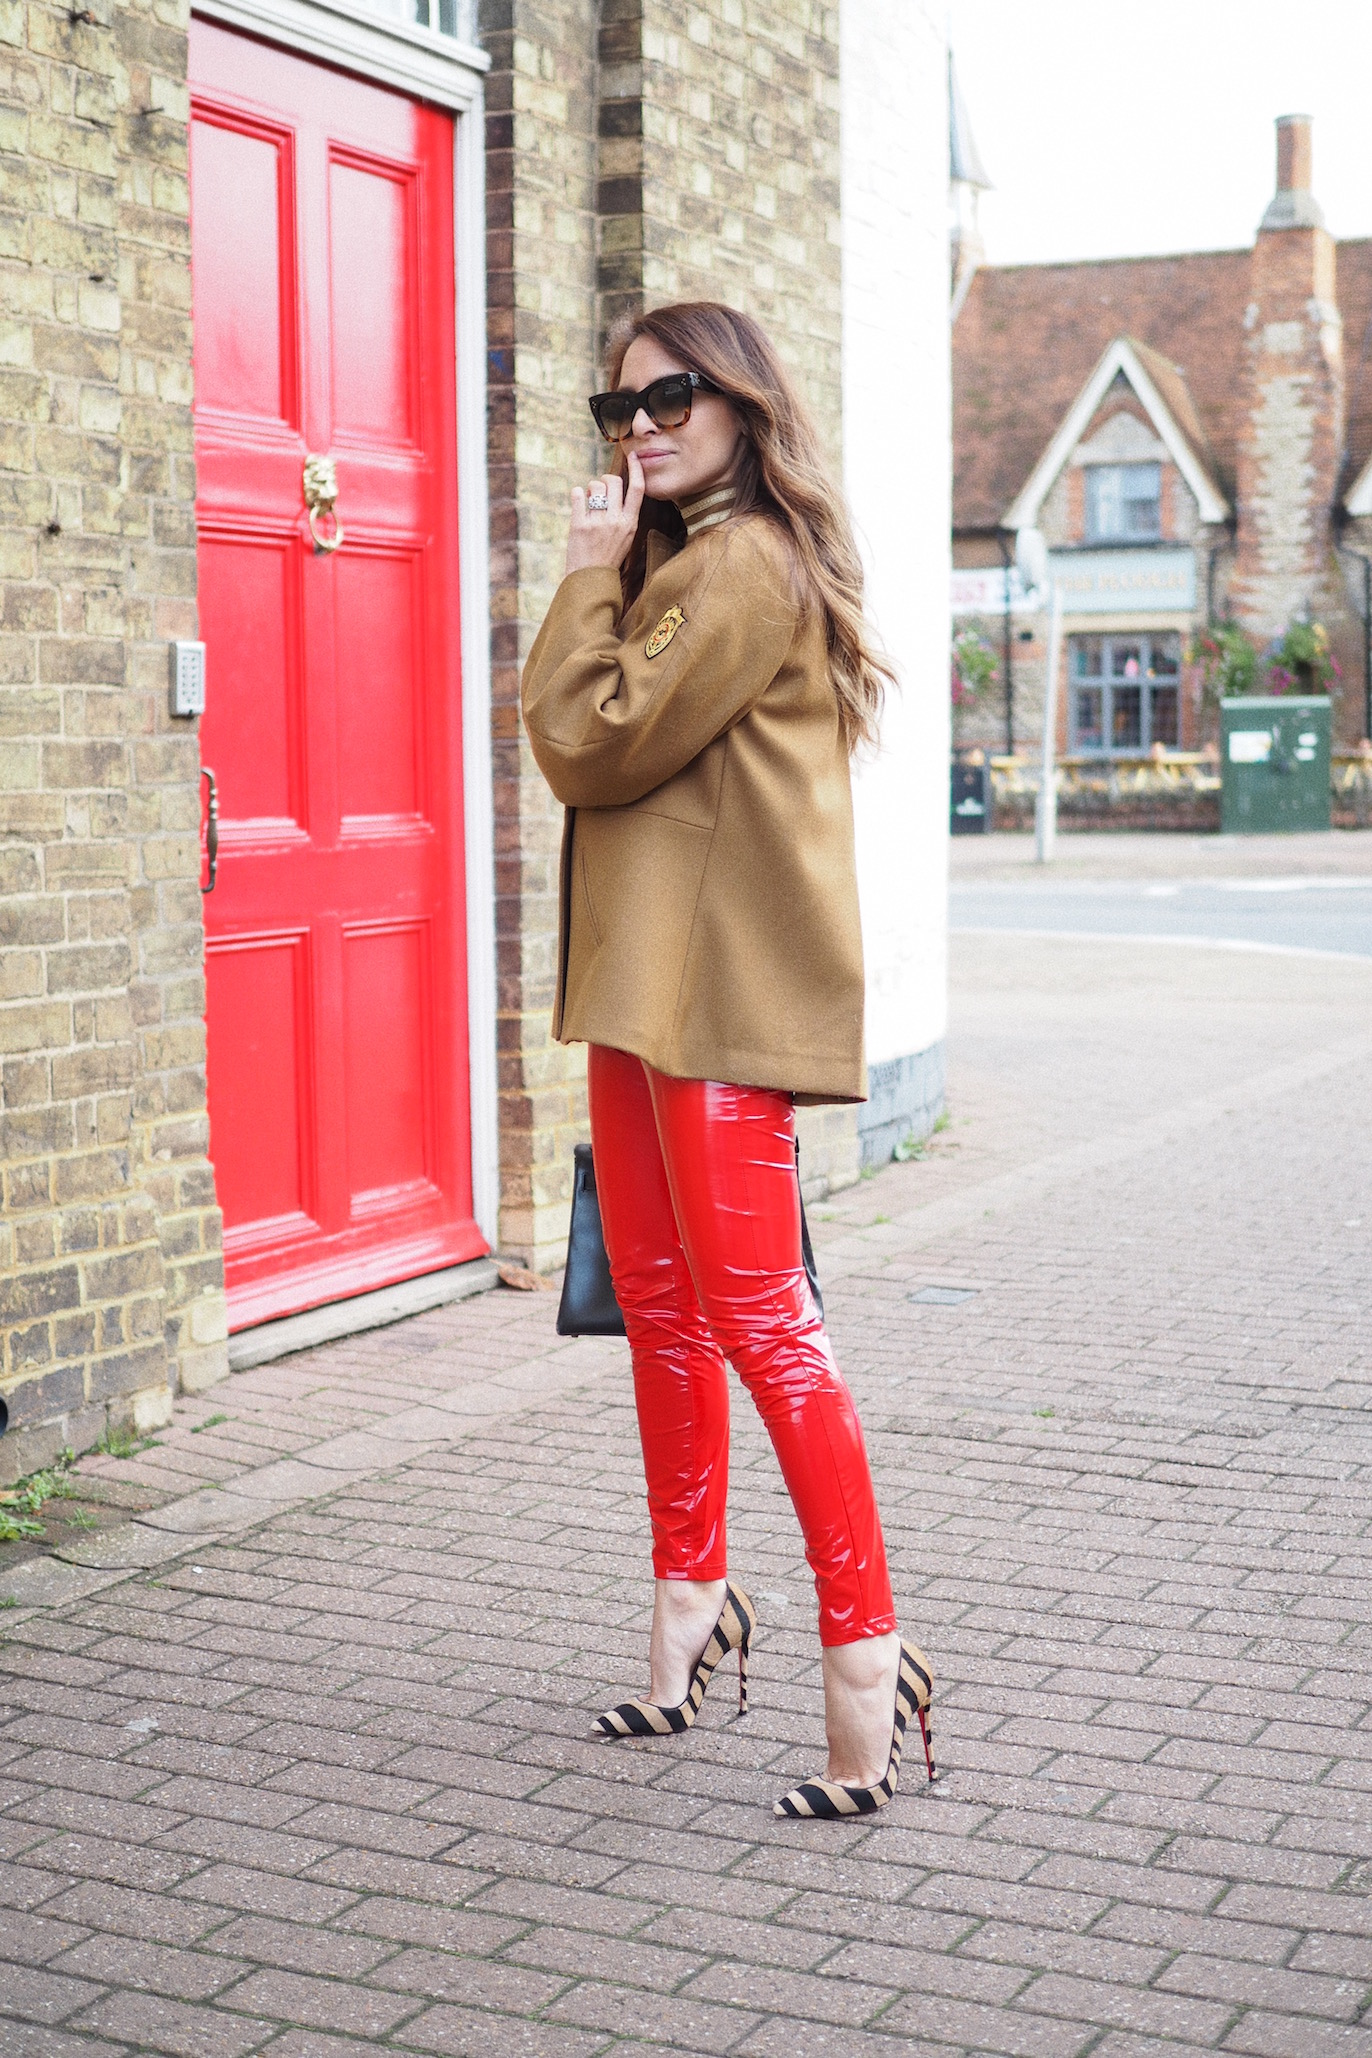 london street style fashion trends christian louboutin so kate shoes